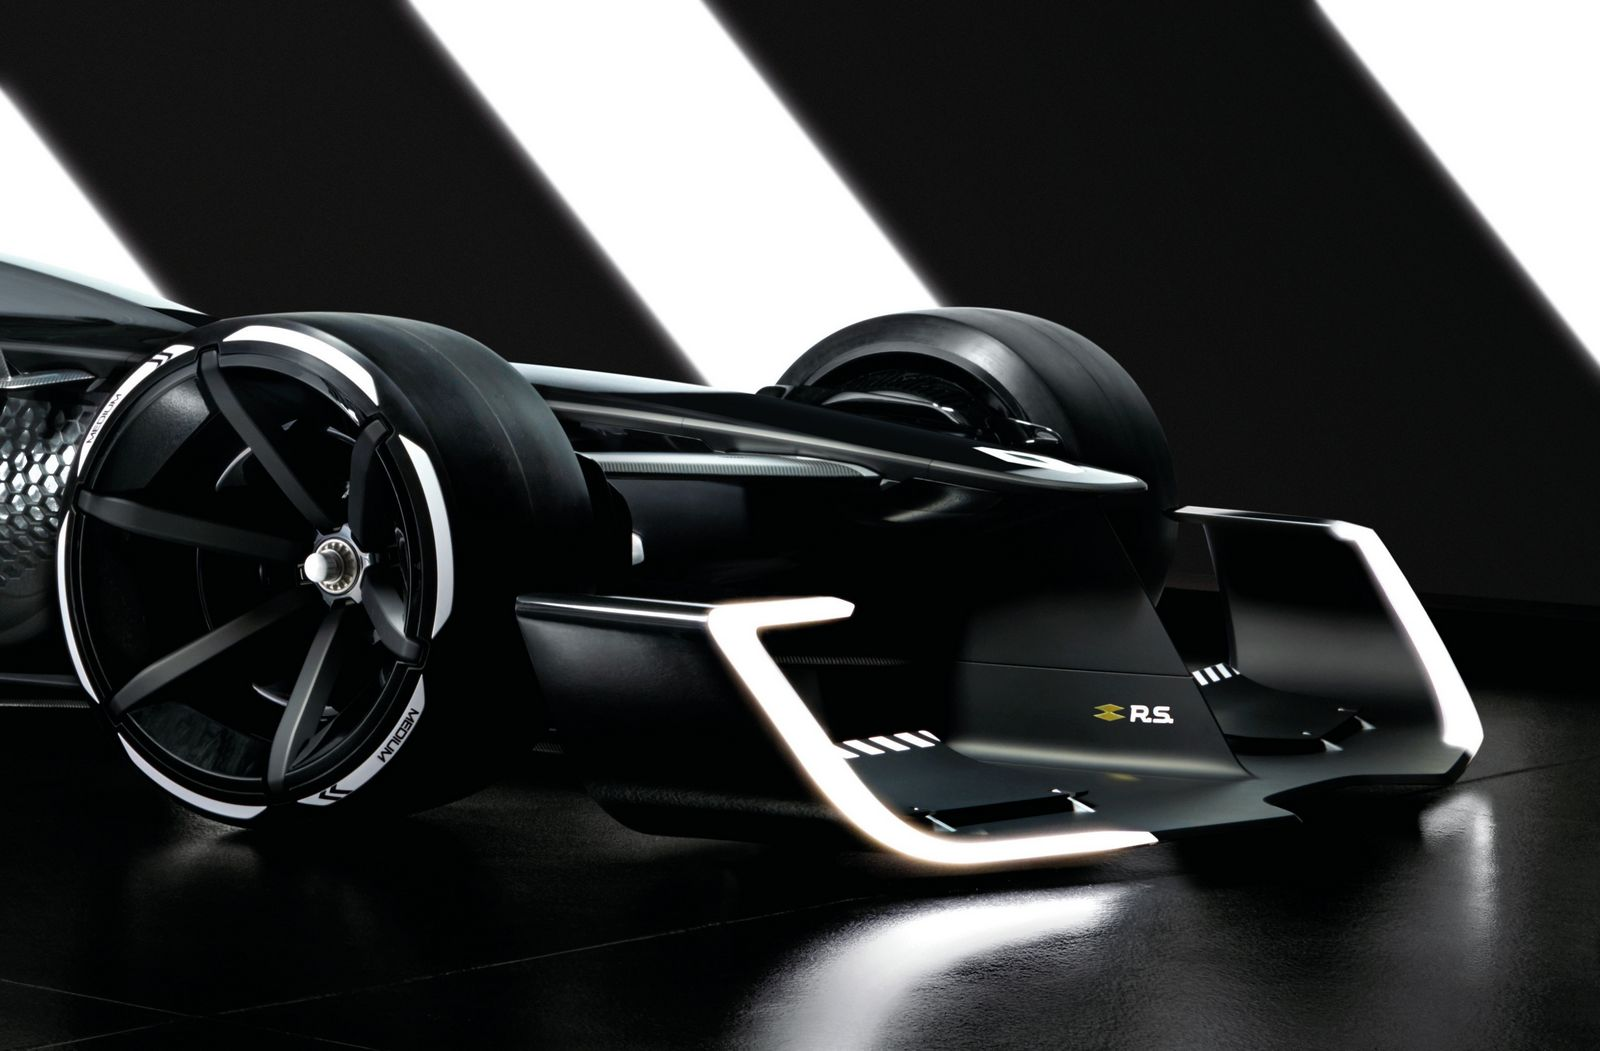 Renault RS 2027 Vision concept (11)